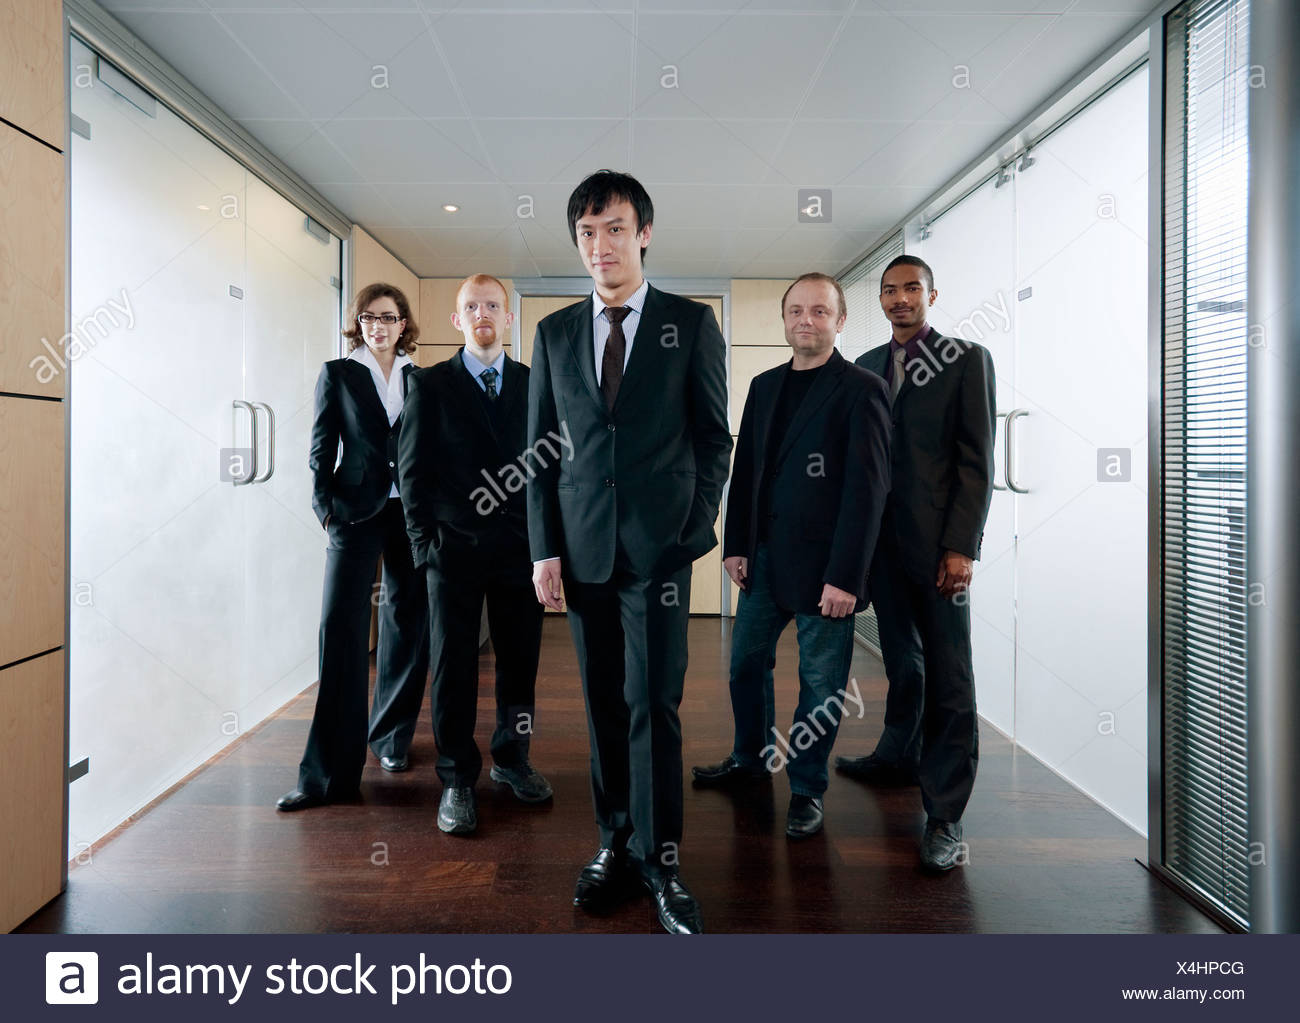 Chinese businessman and his team - Stock Image